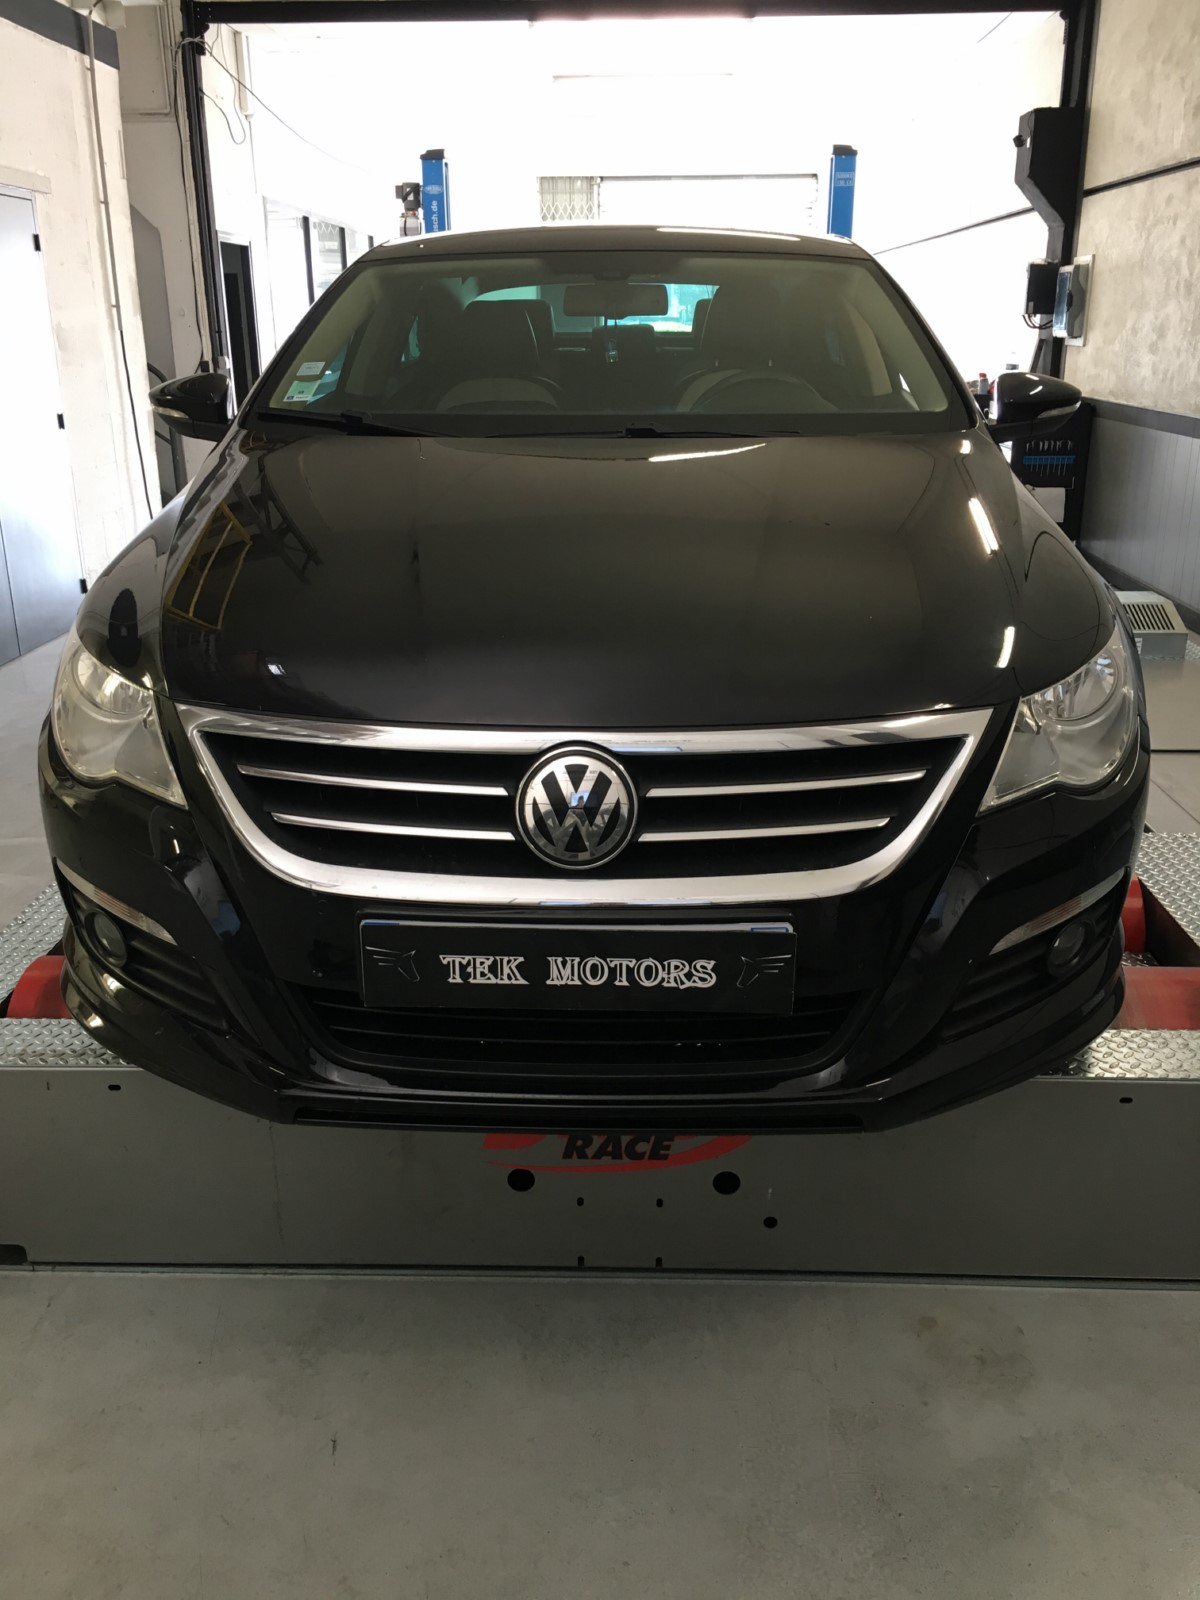 reprogrammation moteur vw passat cc 140 cv by tek motors i